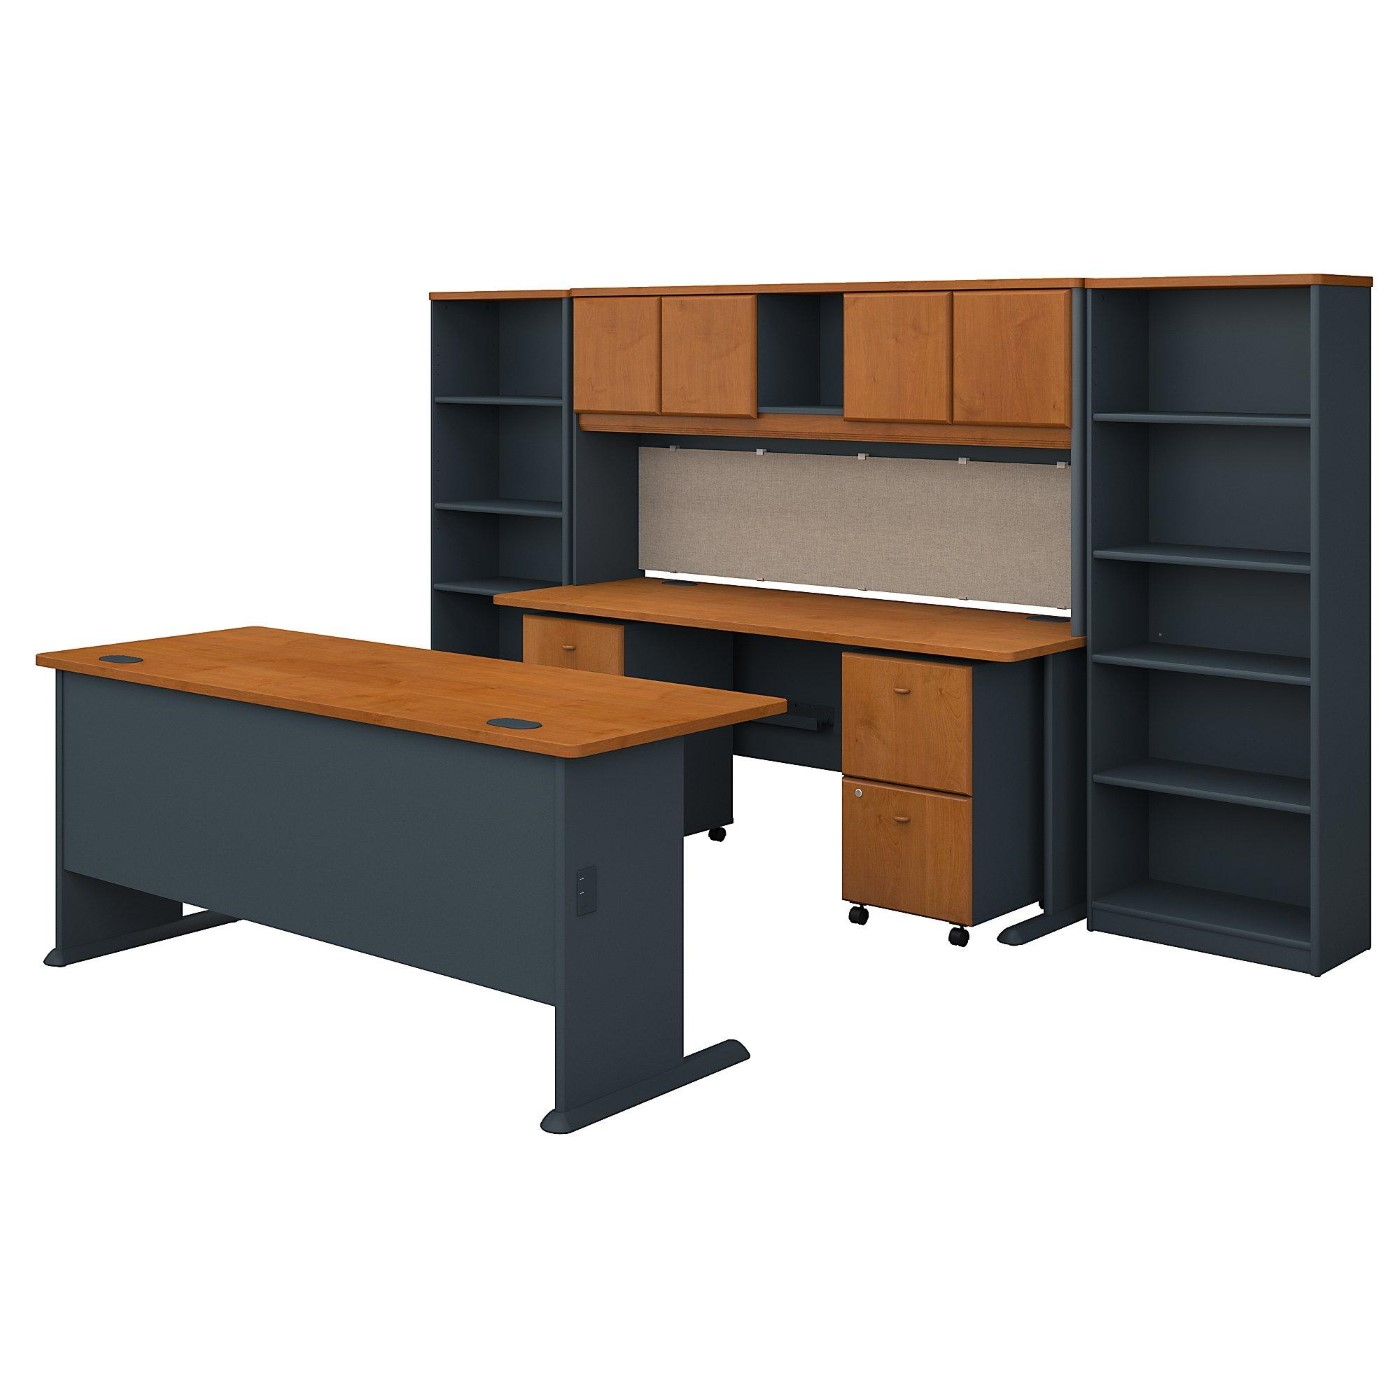 BUSH BUSINESS FURNITURE SERIES A 72W DESK WITH CREDENZA, HUTCH, BOOKCASES AND STORAGE. FREE SHIPPING  VIDEO BELOW.